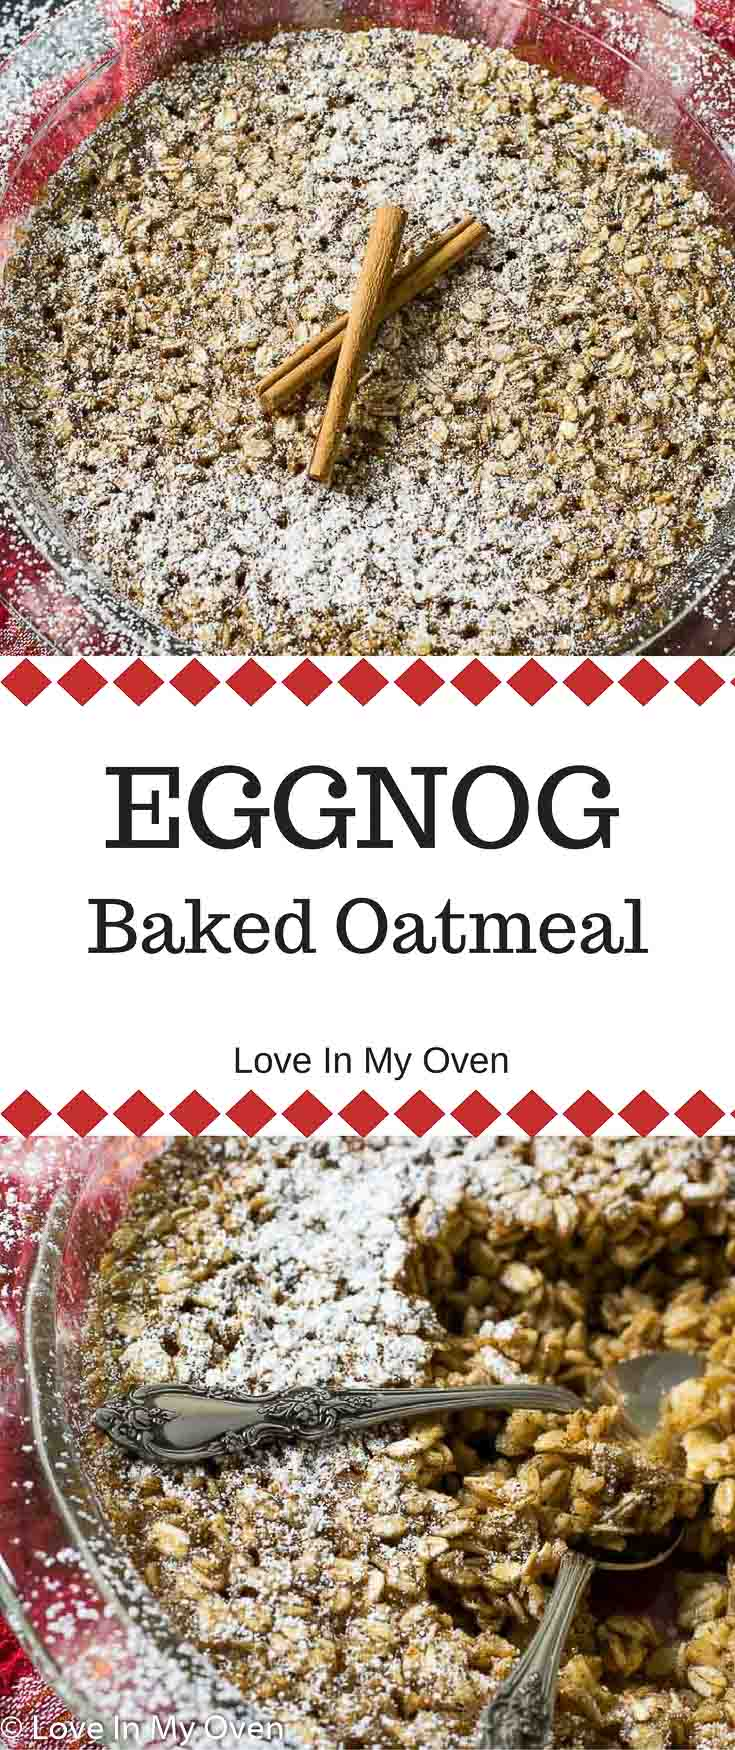 Feed your family (and guests) with this traditional baked oatmeal using eggnog and cinnamon! It's your next go-to hearty, holiday breakfast.